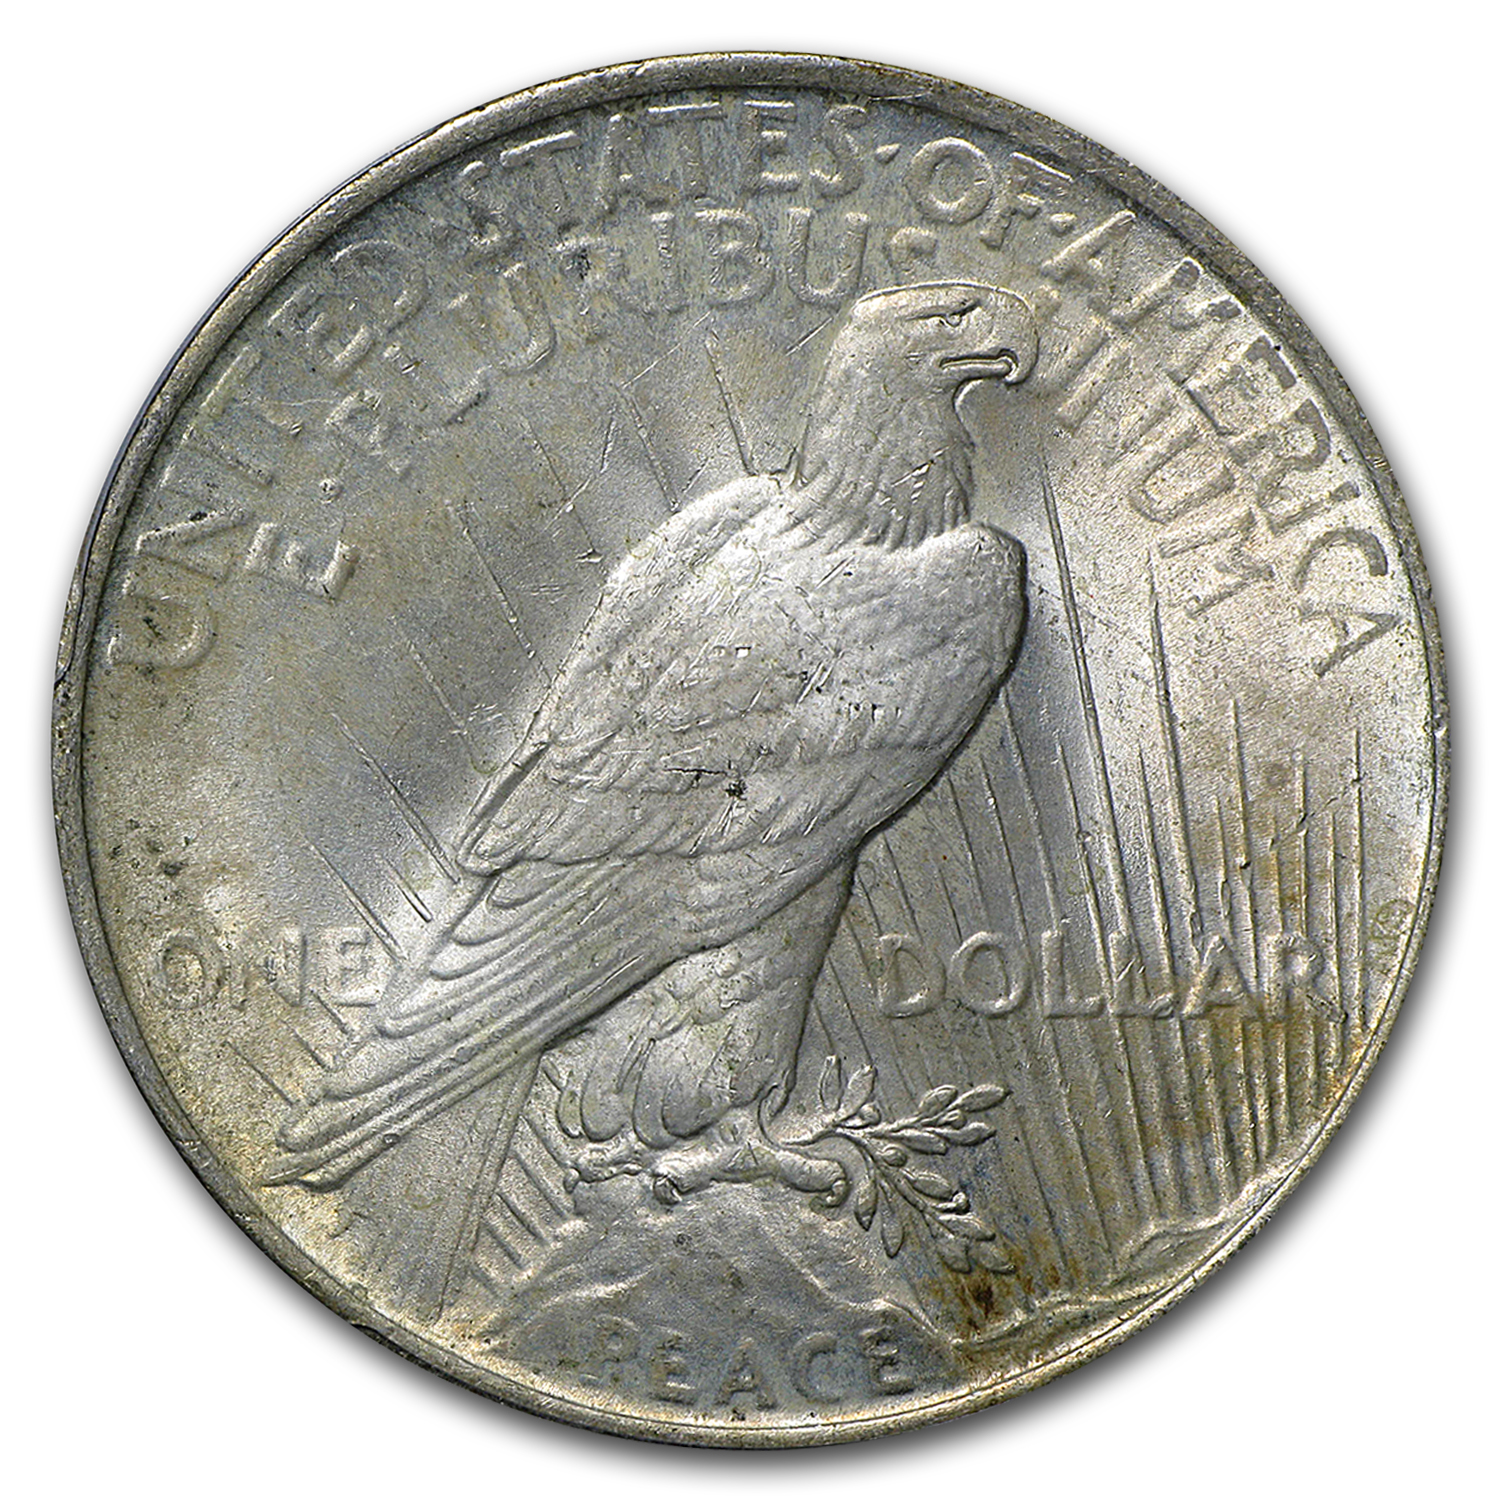 1922-1925 Peace Dollars - MS-64 PCGS (Toned Obverse/Reverse)